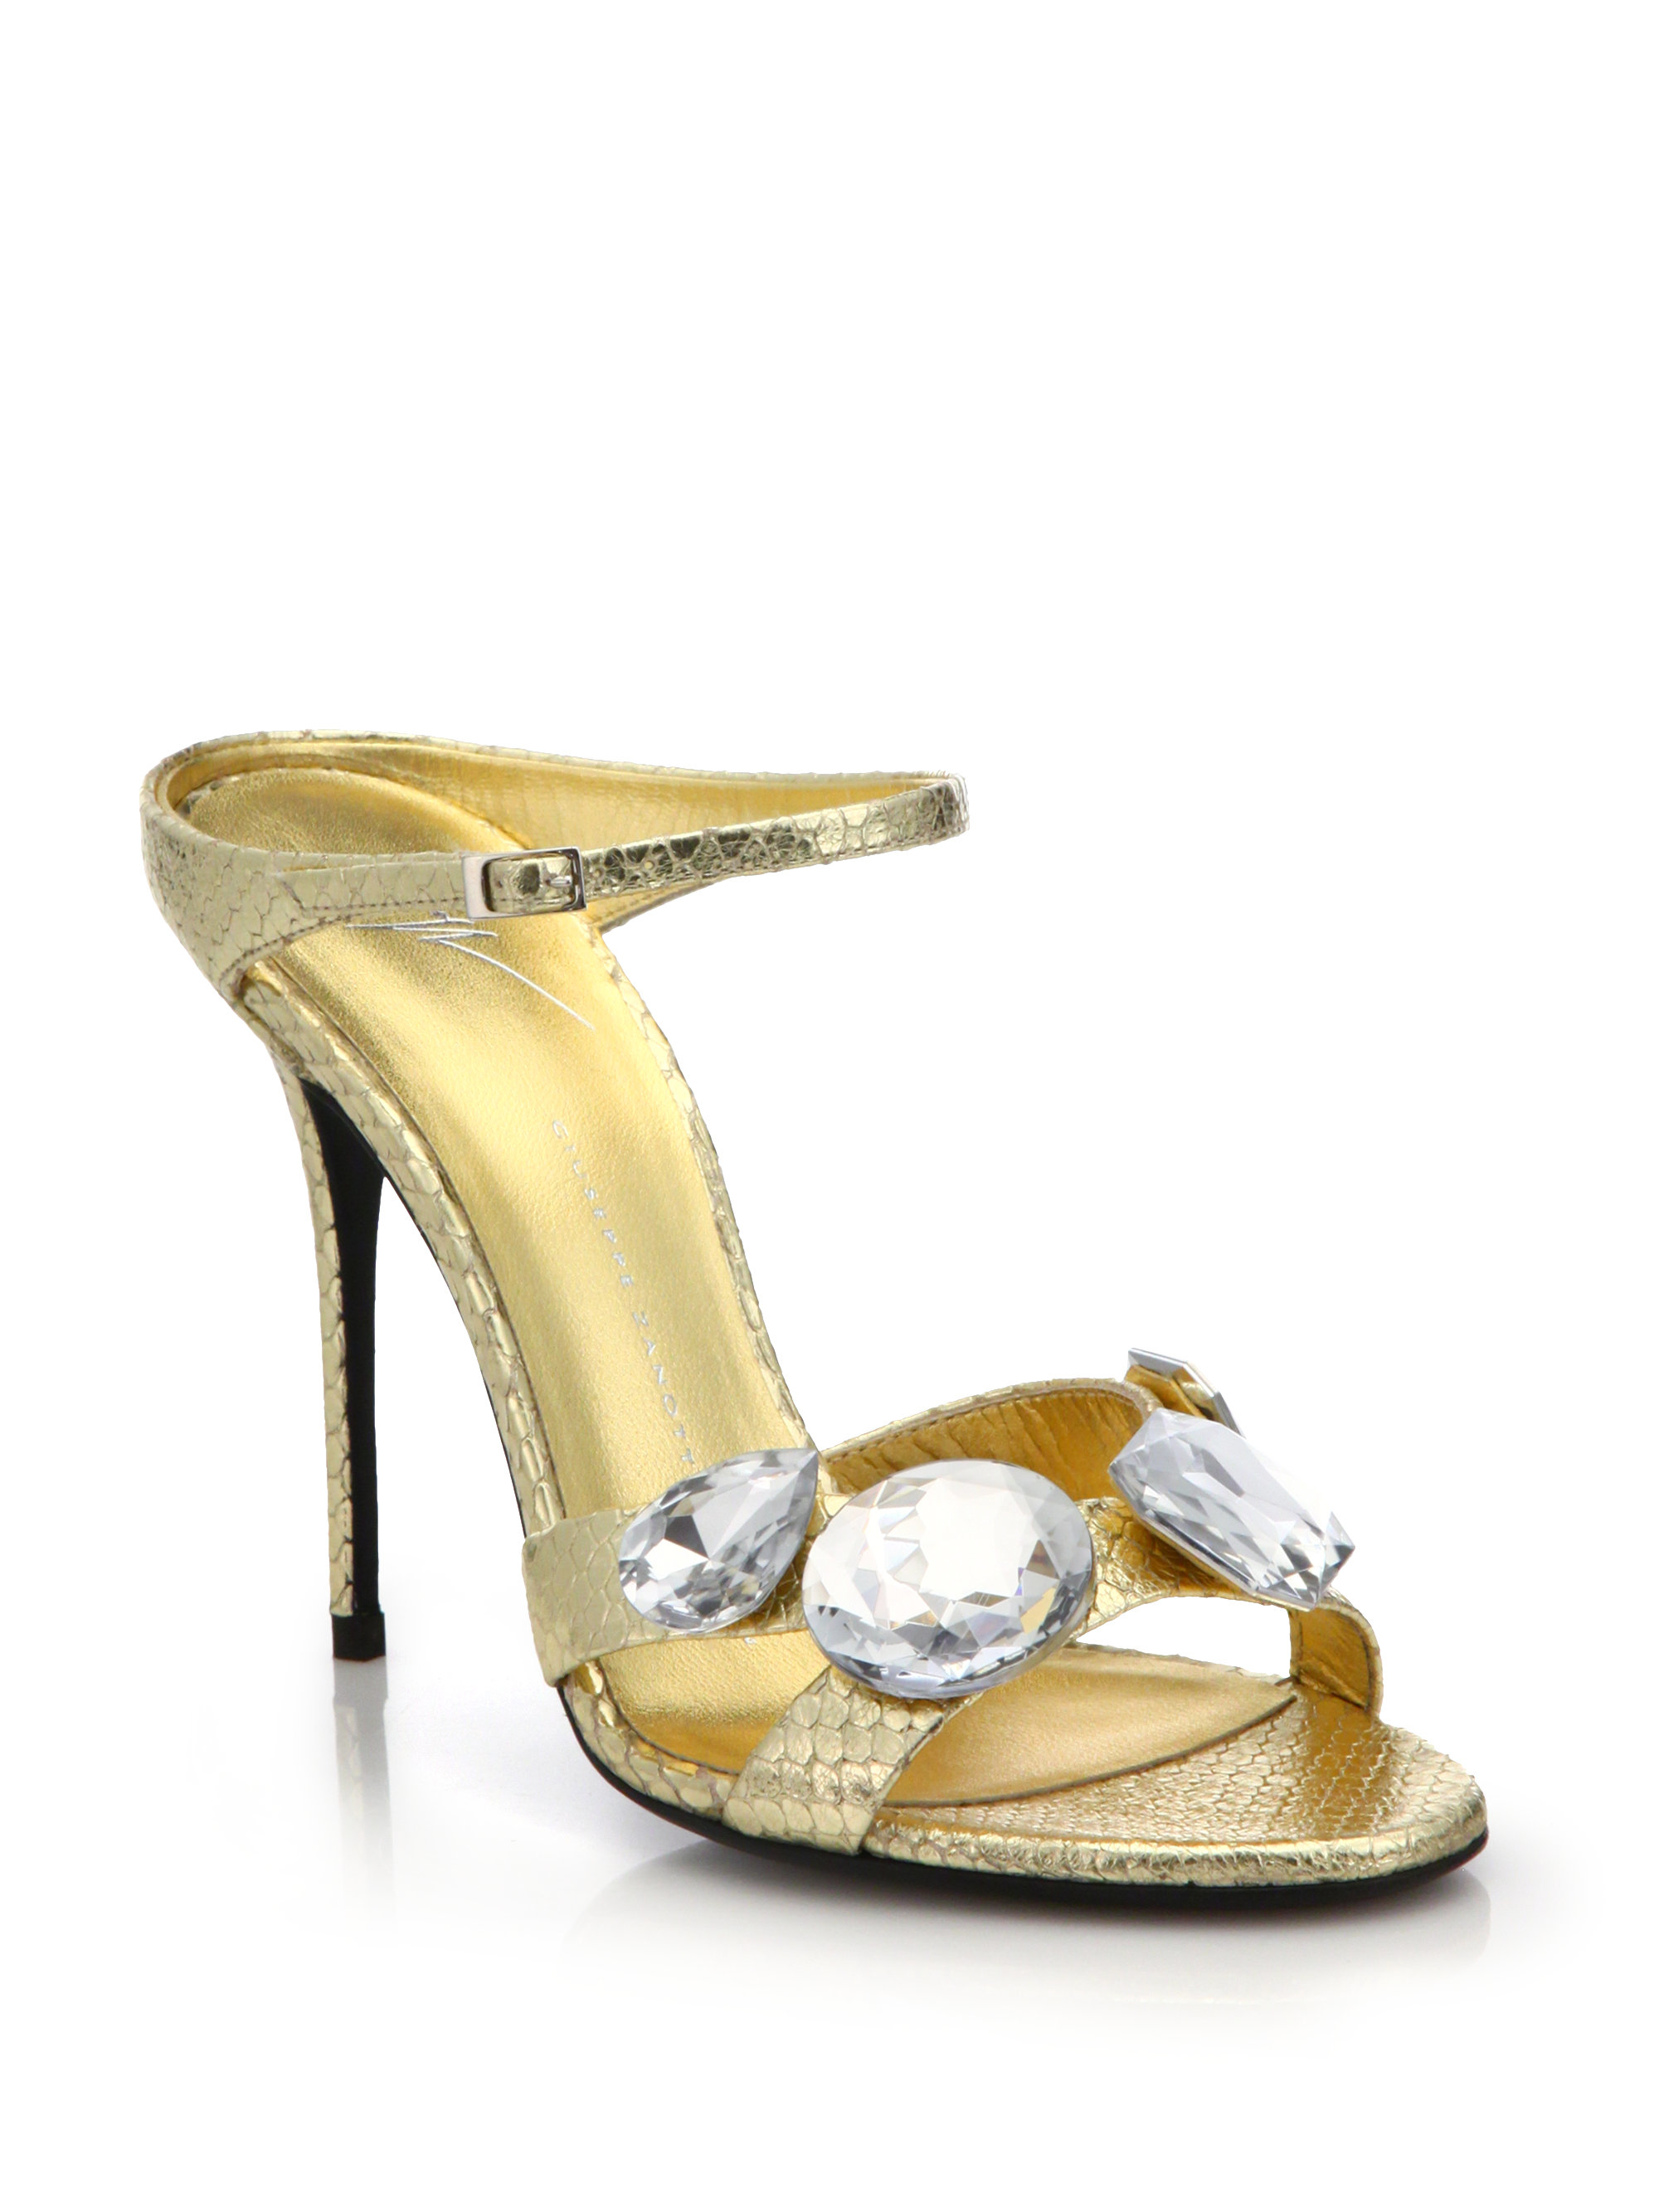 Giuseppe Zanotti Jewel-Accented Suede Sandals cheap sale 2014 excellent for sale clearance browse online sale online footlocker cheap price qAFMUnqow